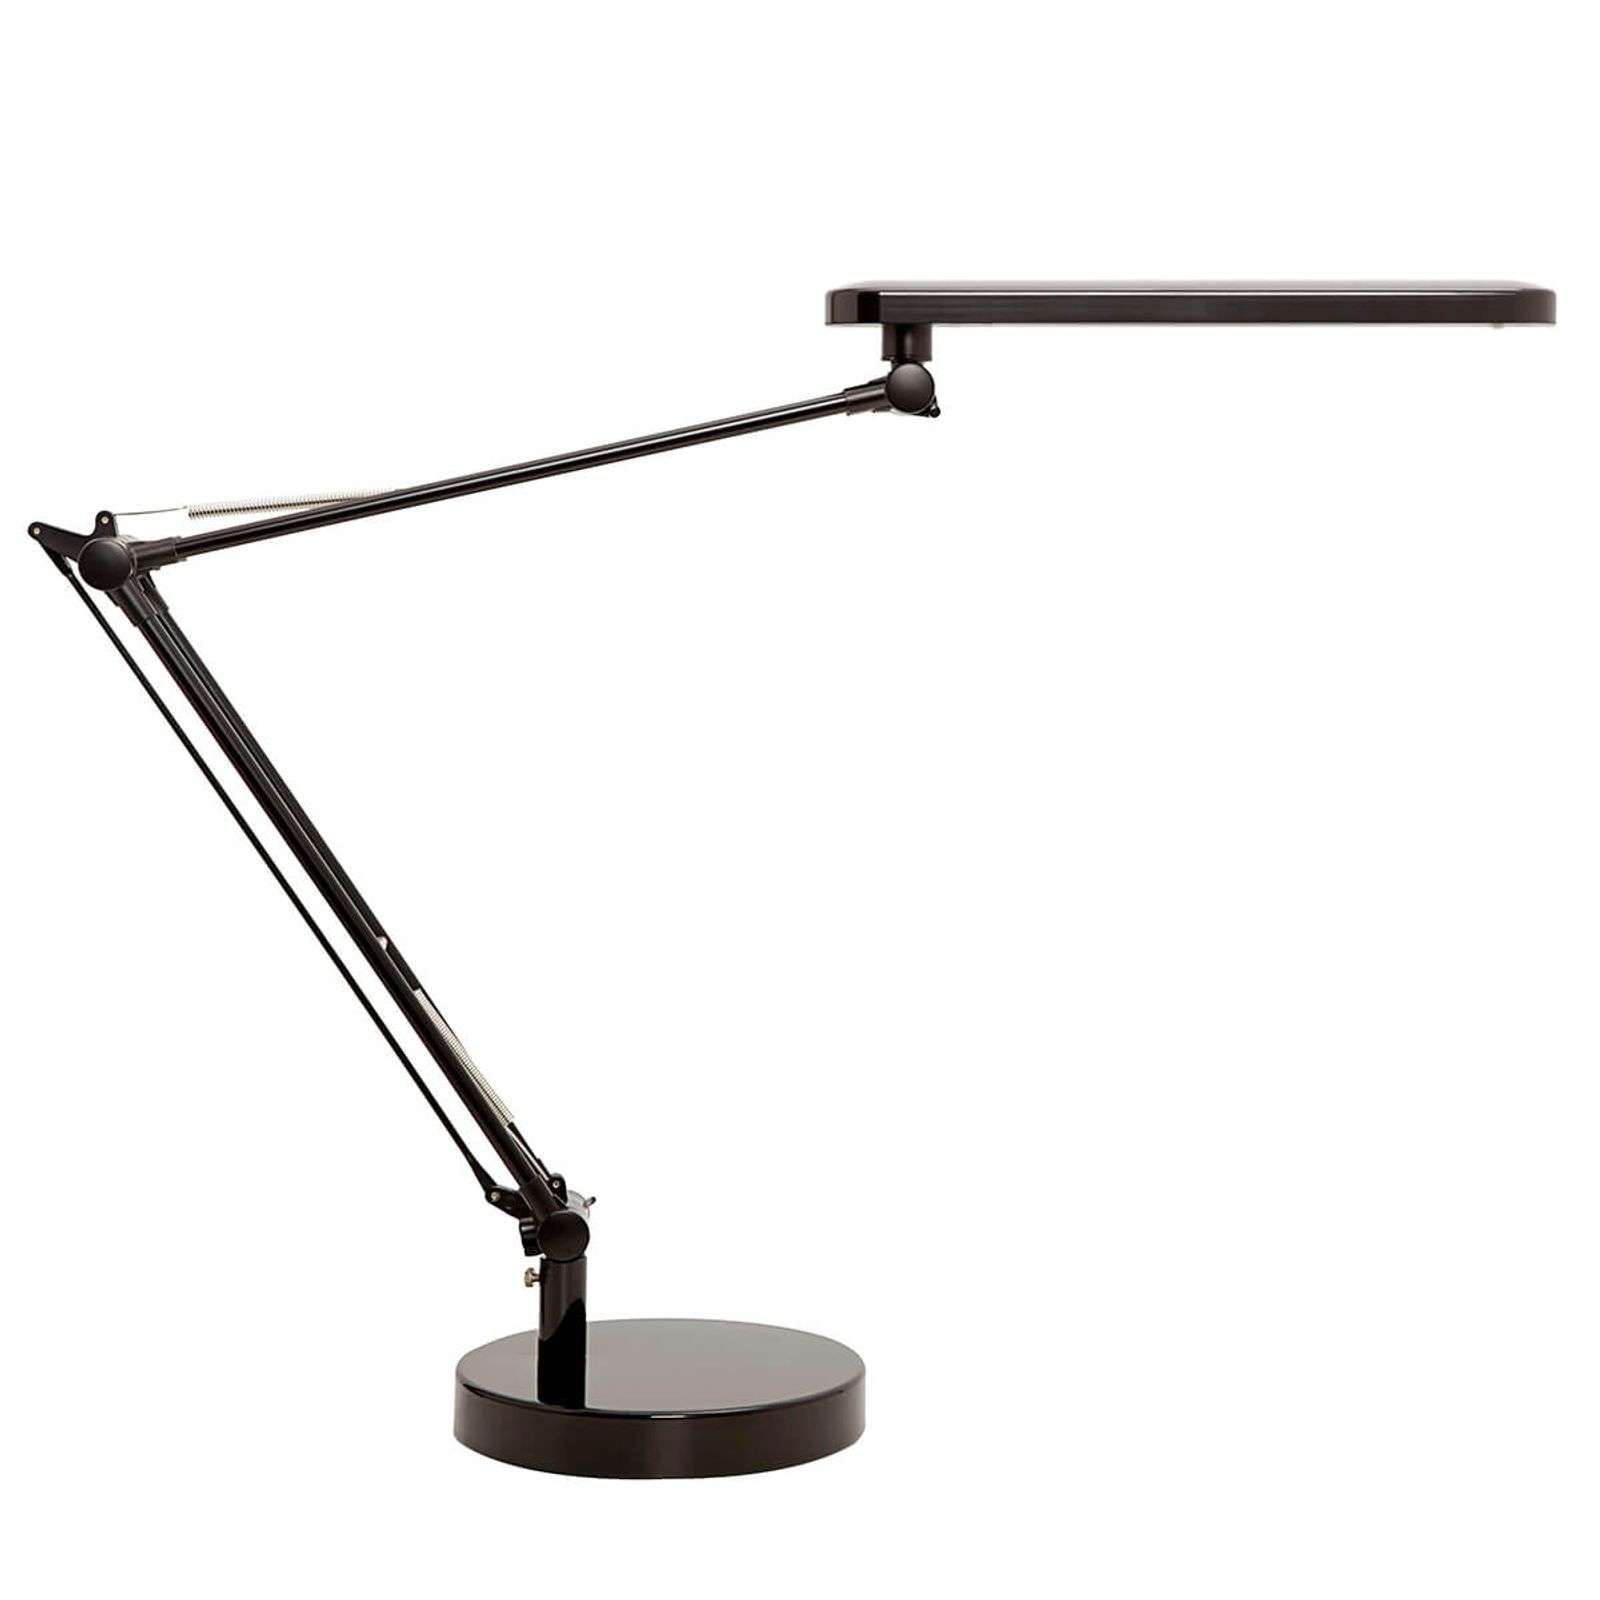 Lampe de bureau LED MamboLED flexible, noire